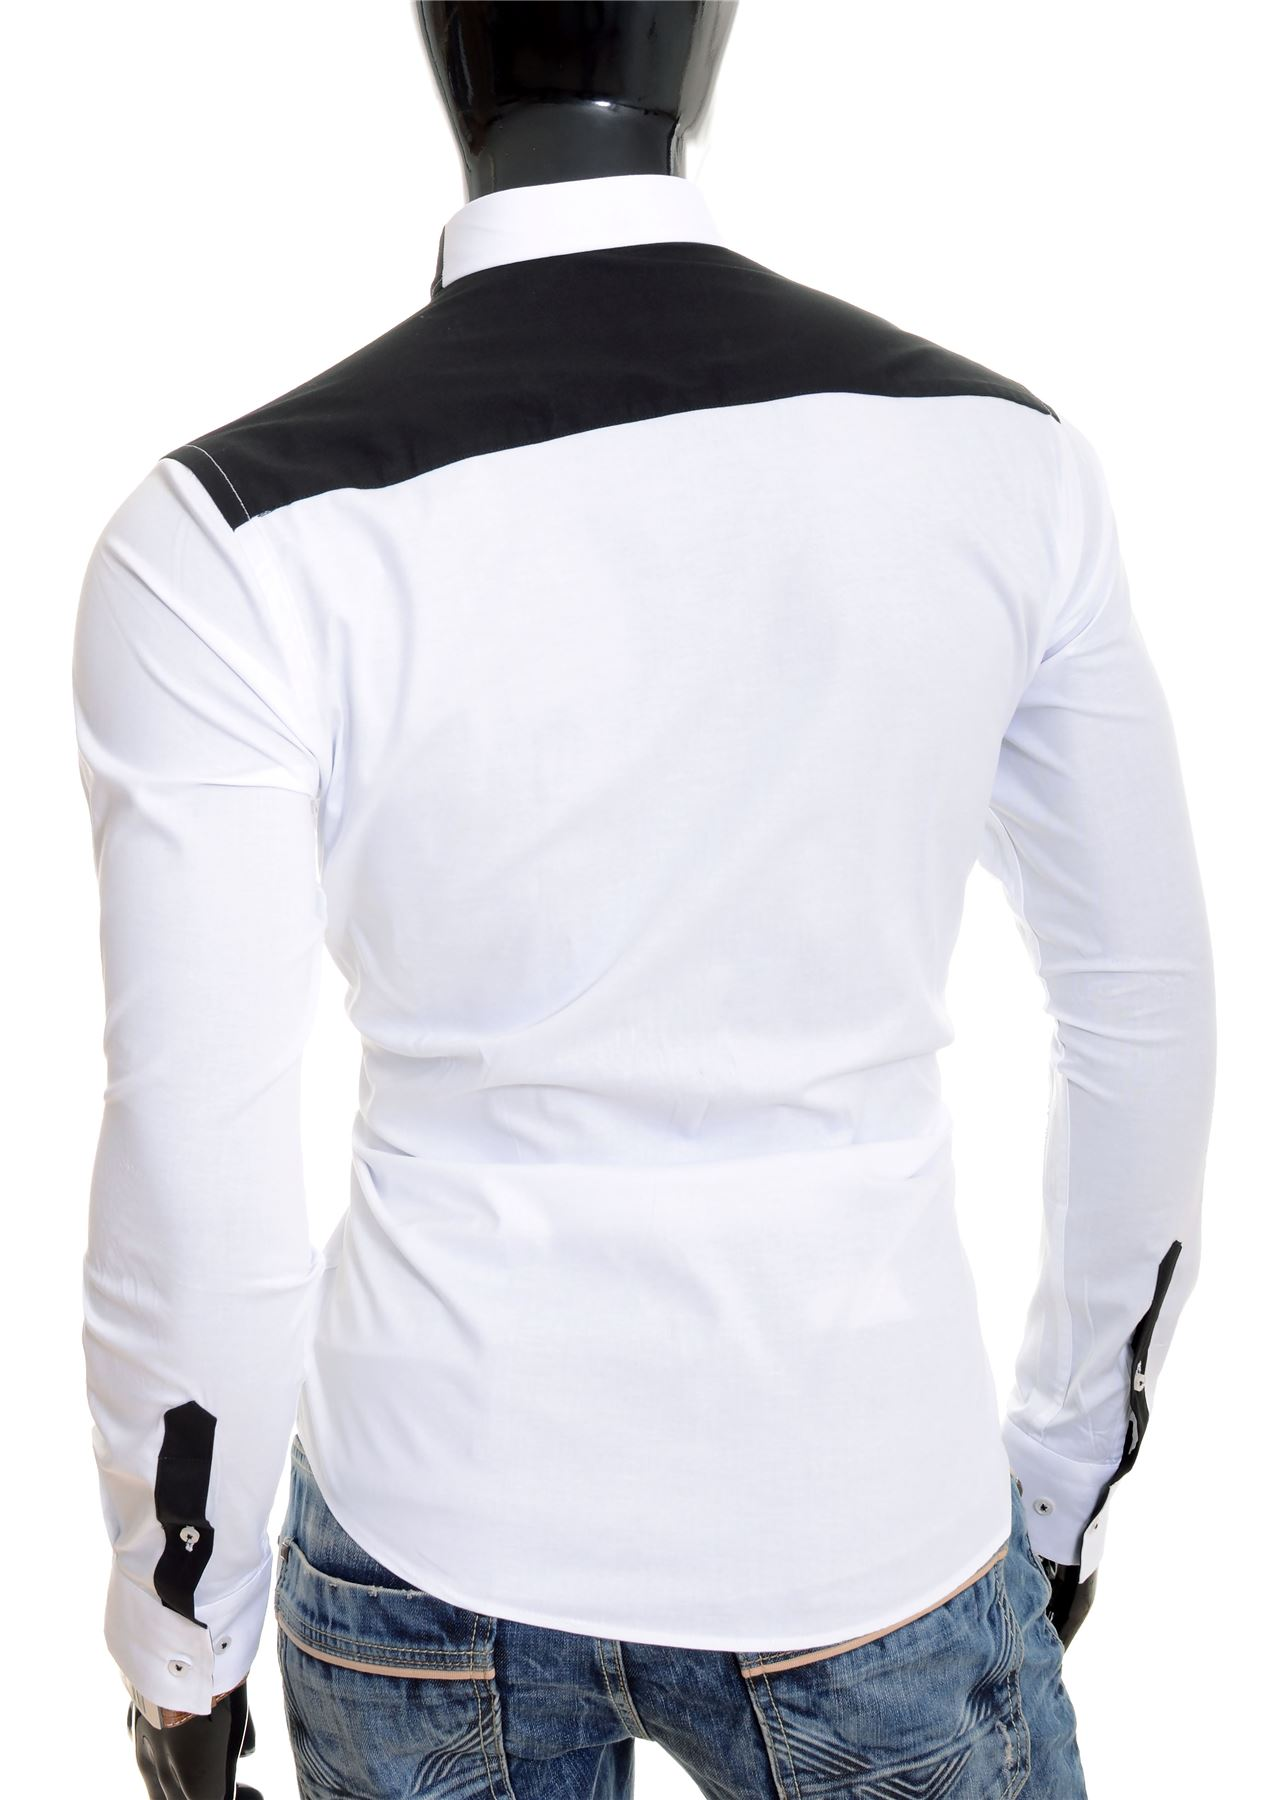 Cipo-amp-Baxx-Designer-Men-039-s-Elegant-Shirt-White-Black-Cotton-Slim-Contrast-Cuffs thumbnail 14